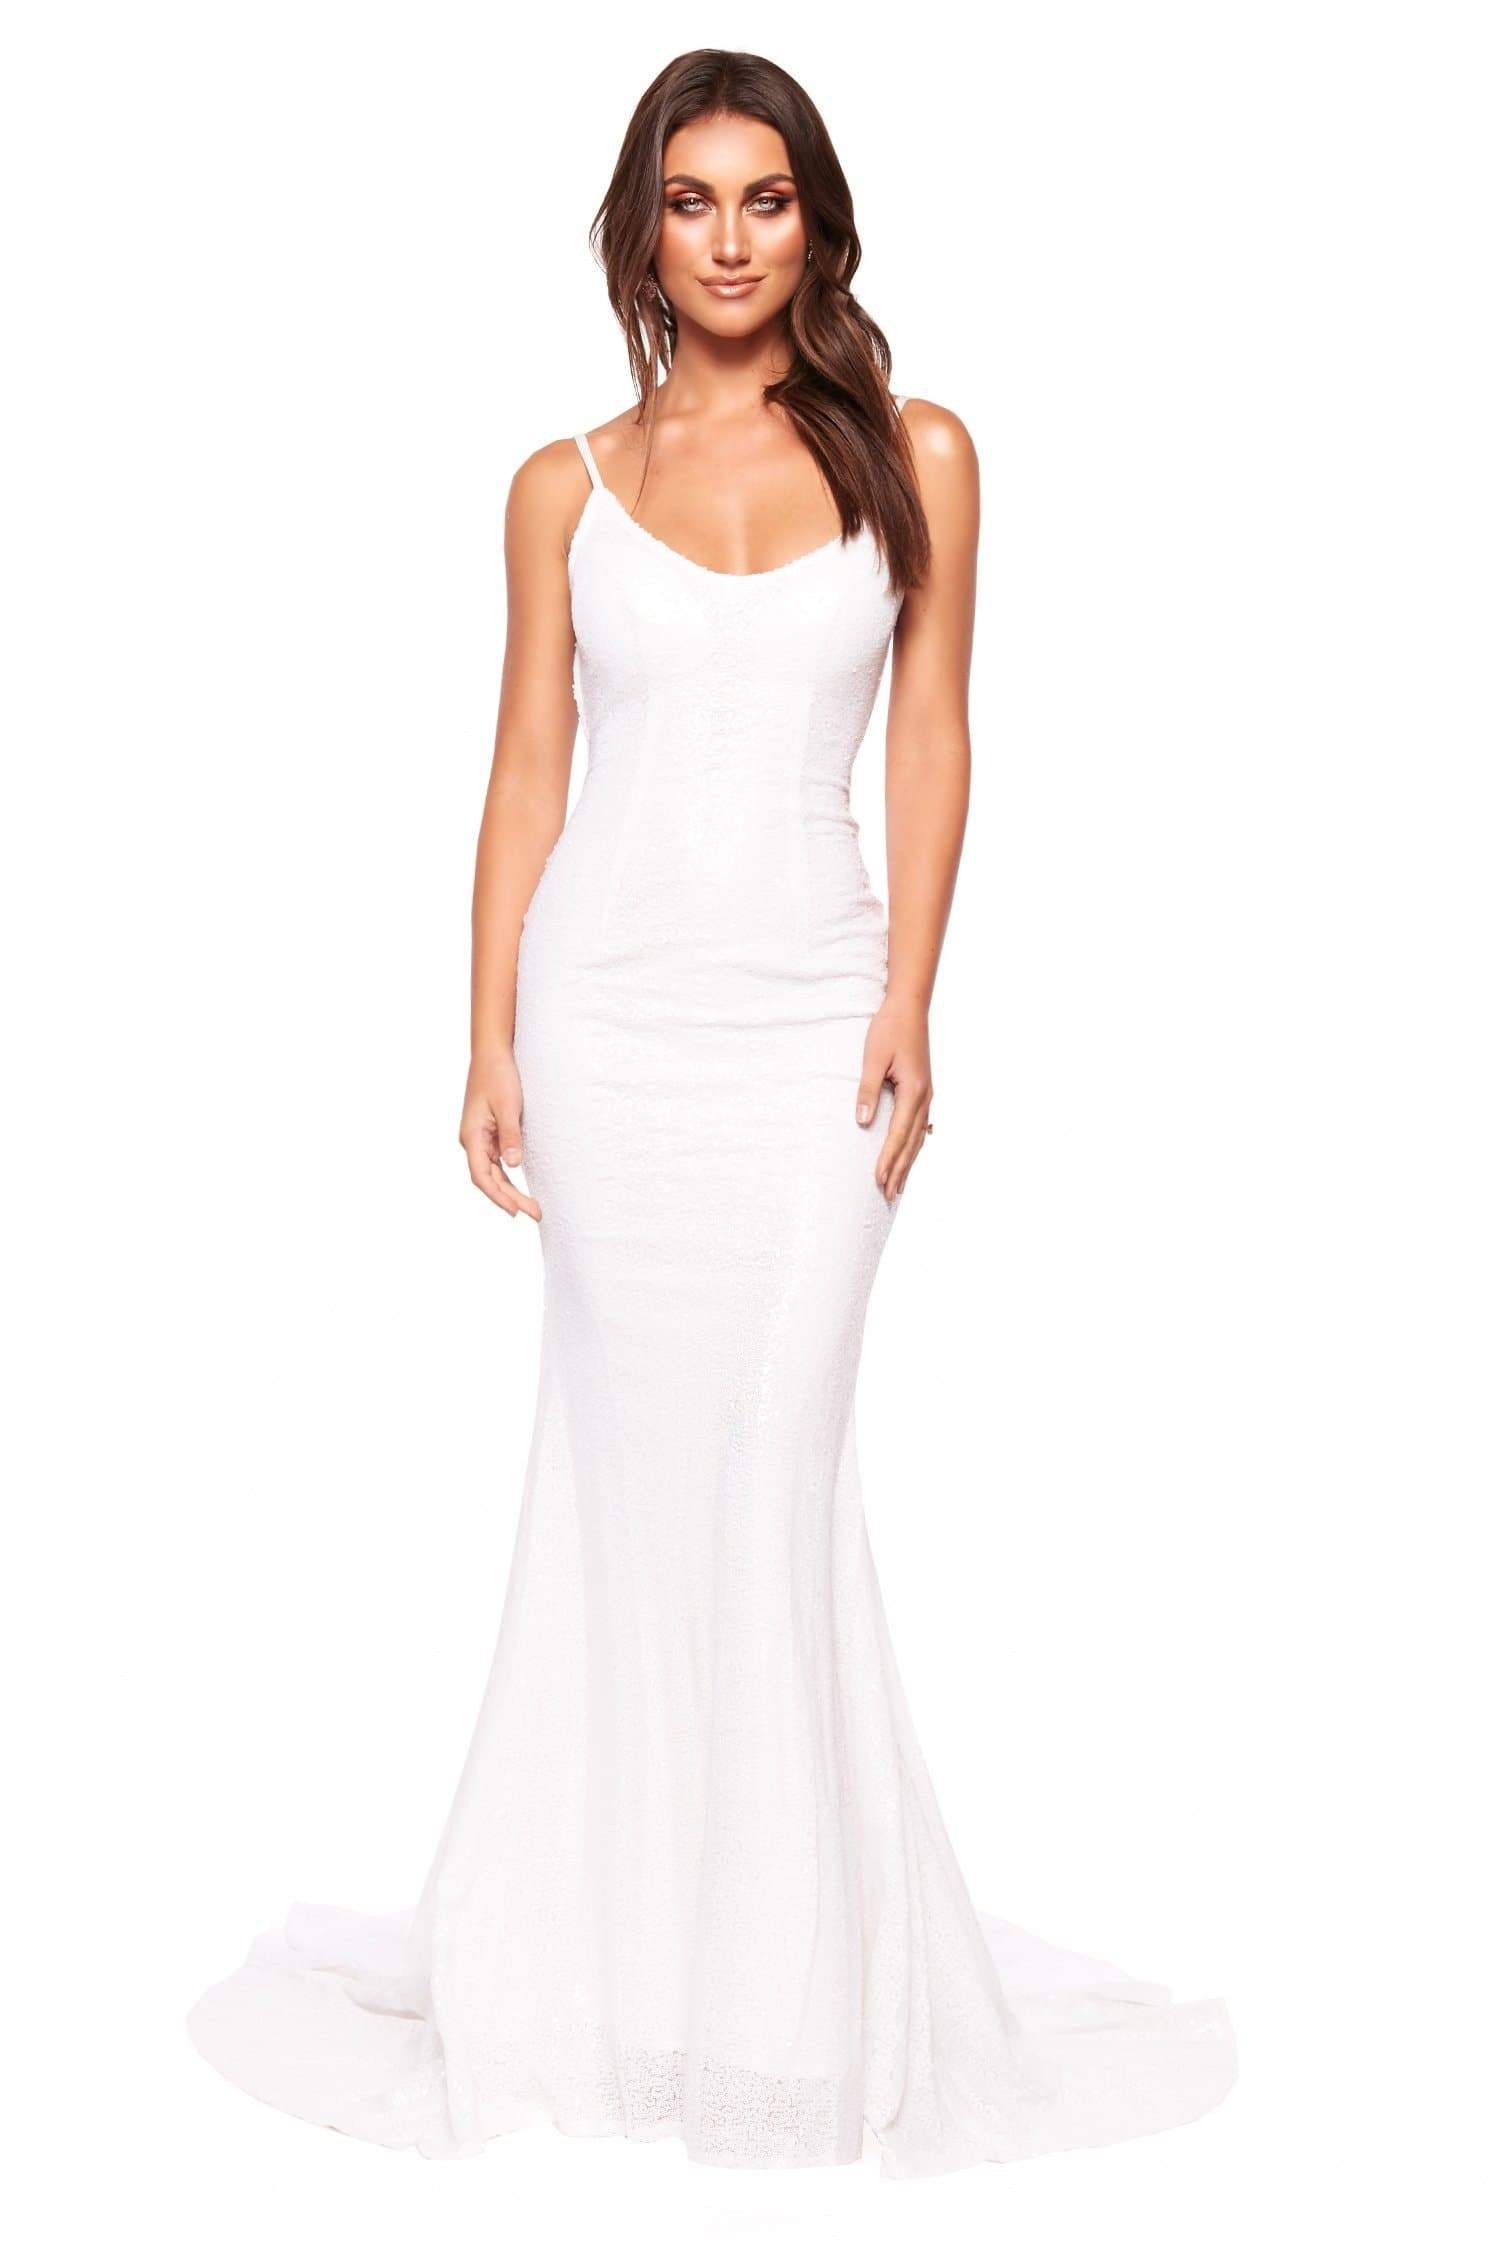 A&N Luxe Rumi - White Sequin Mermaid Gown with Scoop Neck & Low Back